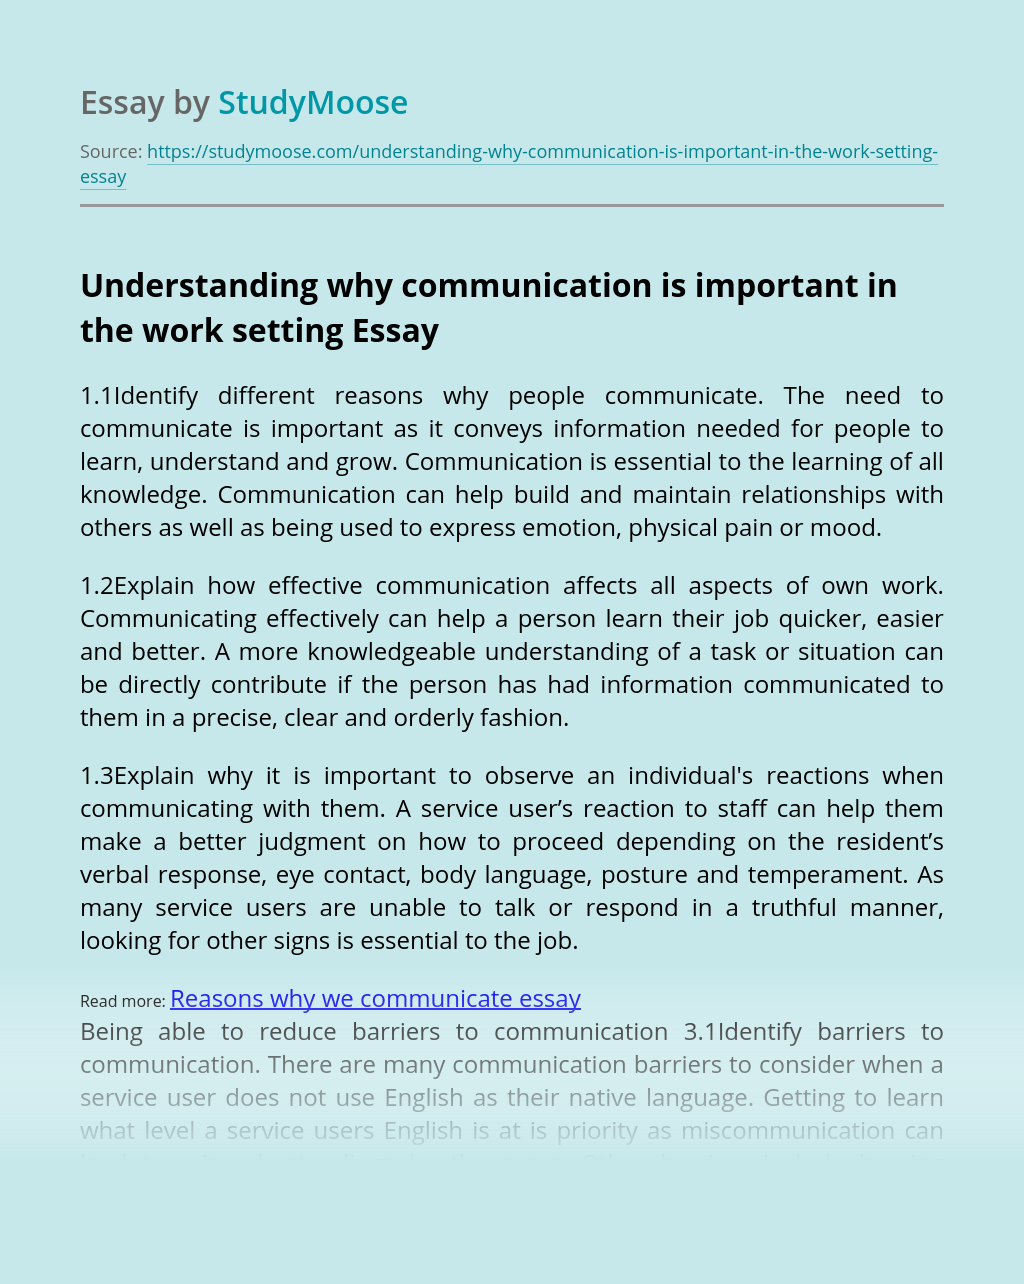 Understanding why communication is important in the work setting